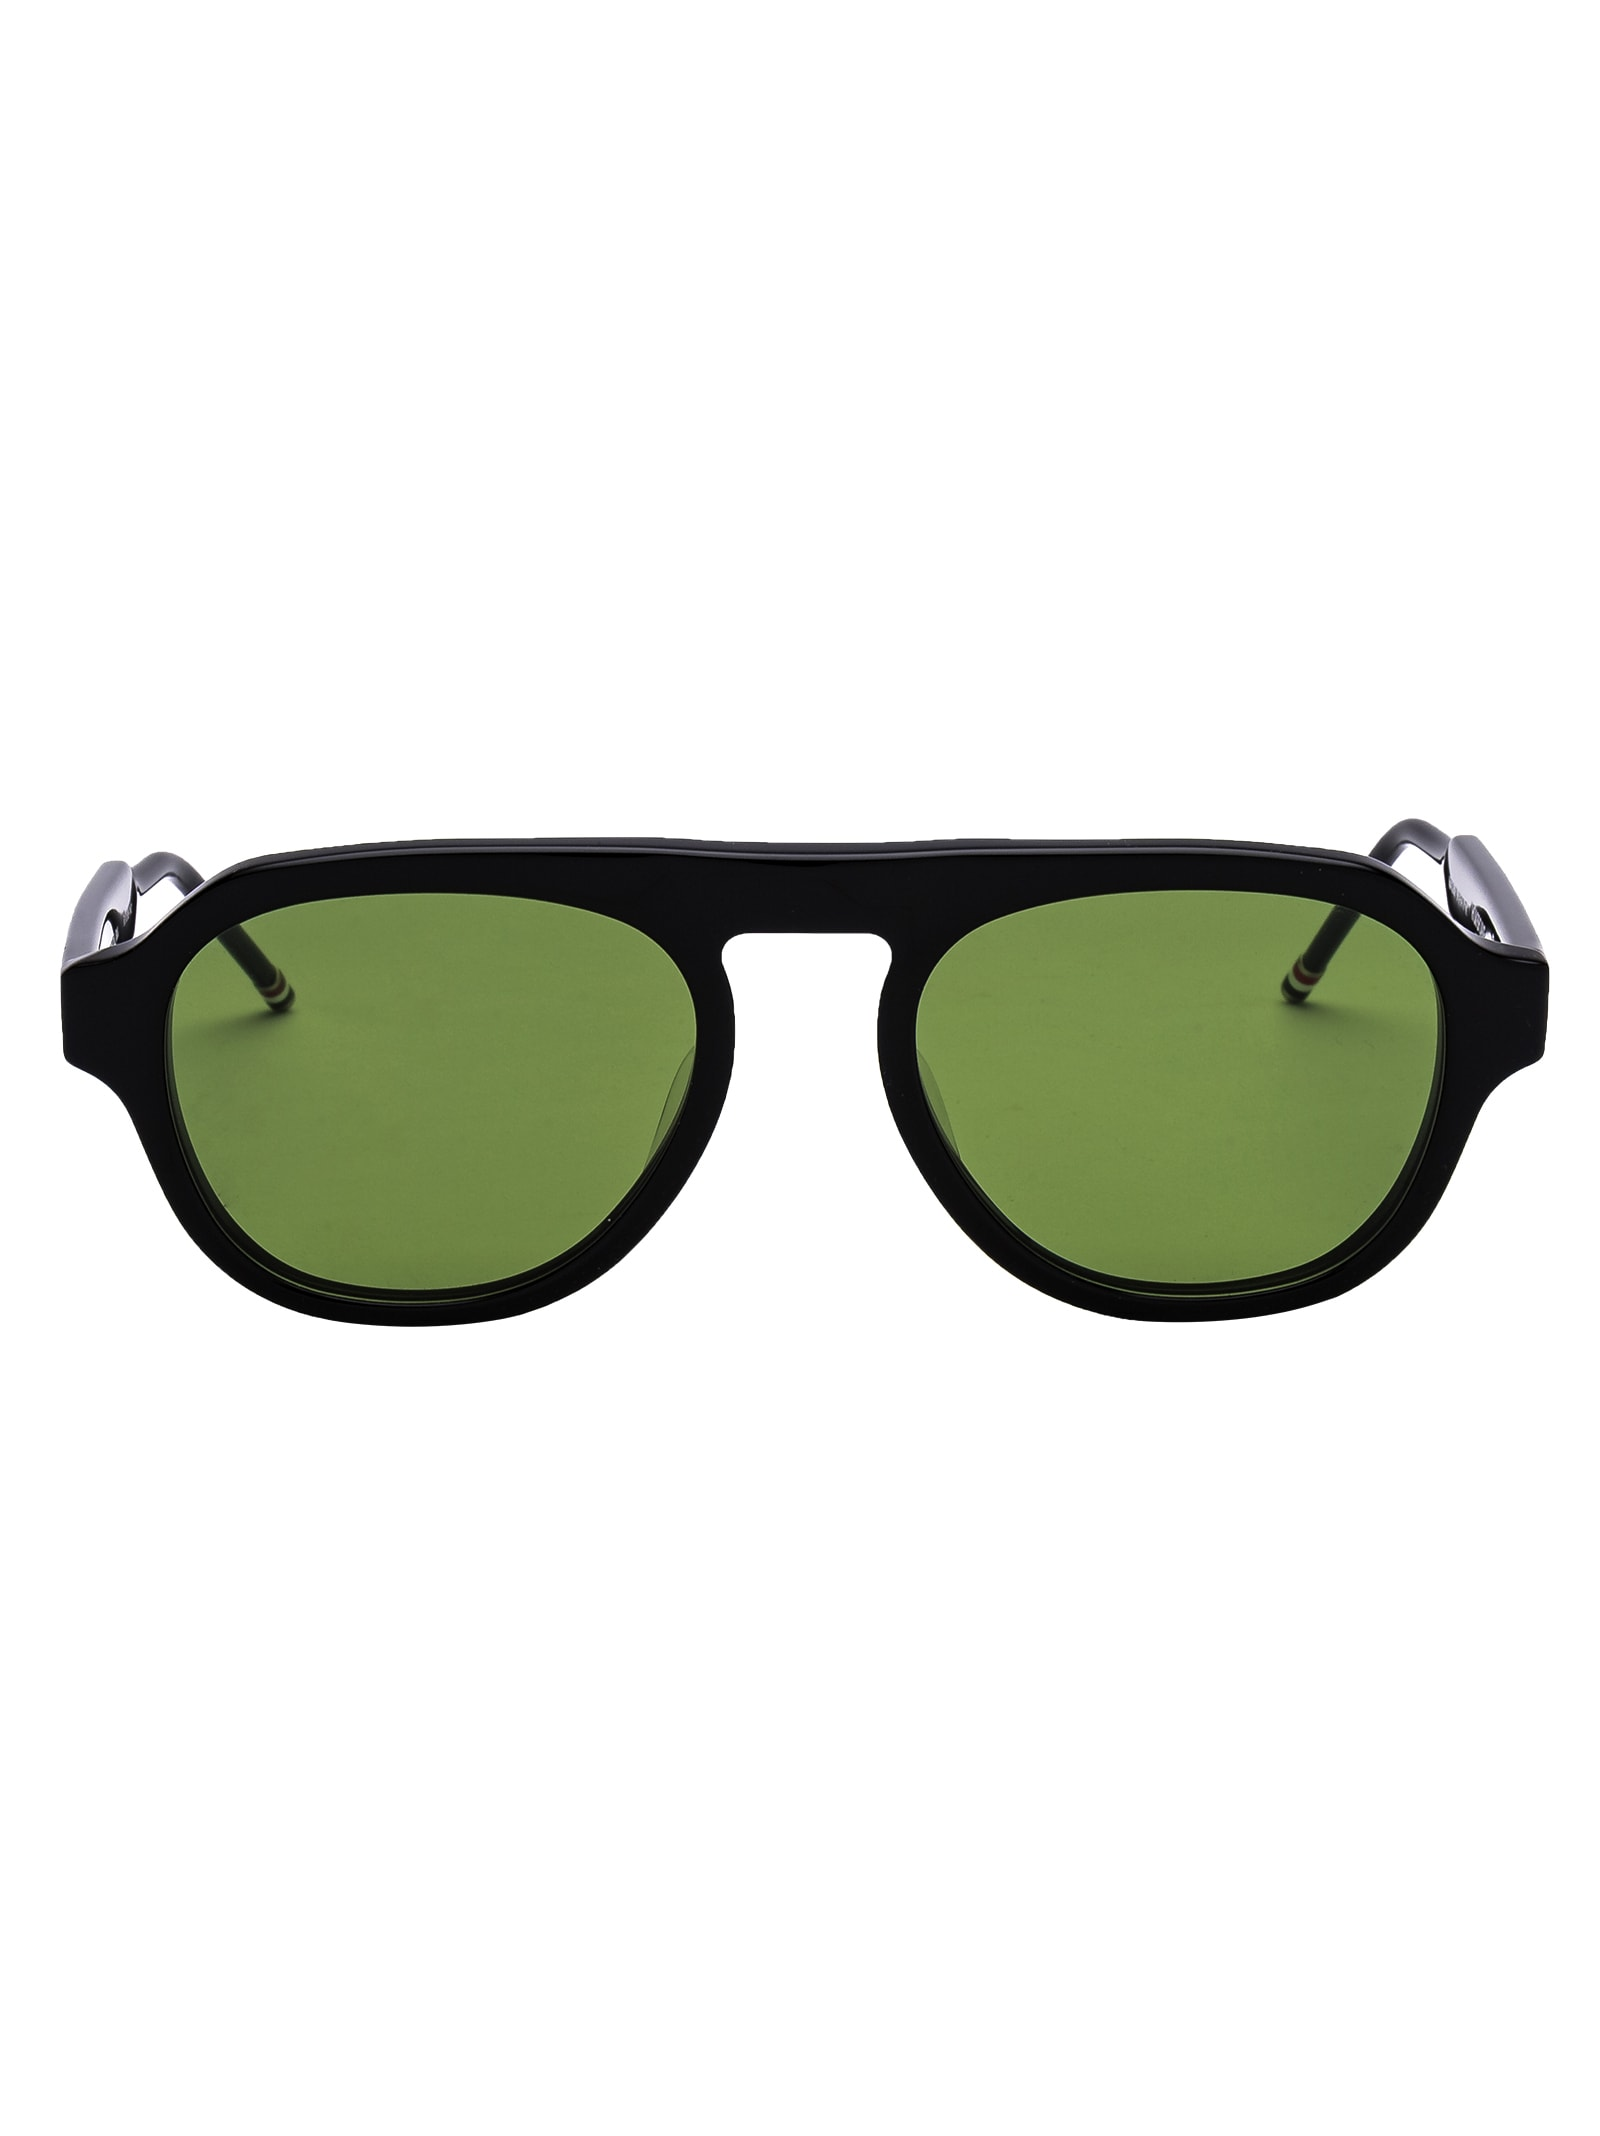 Tb-416 Sunglasses